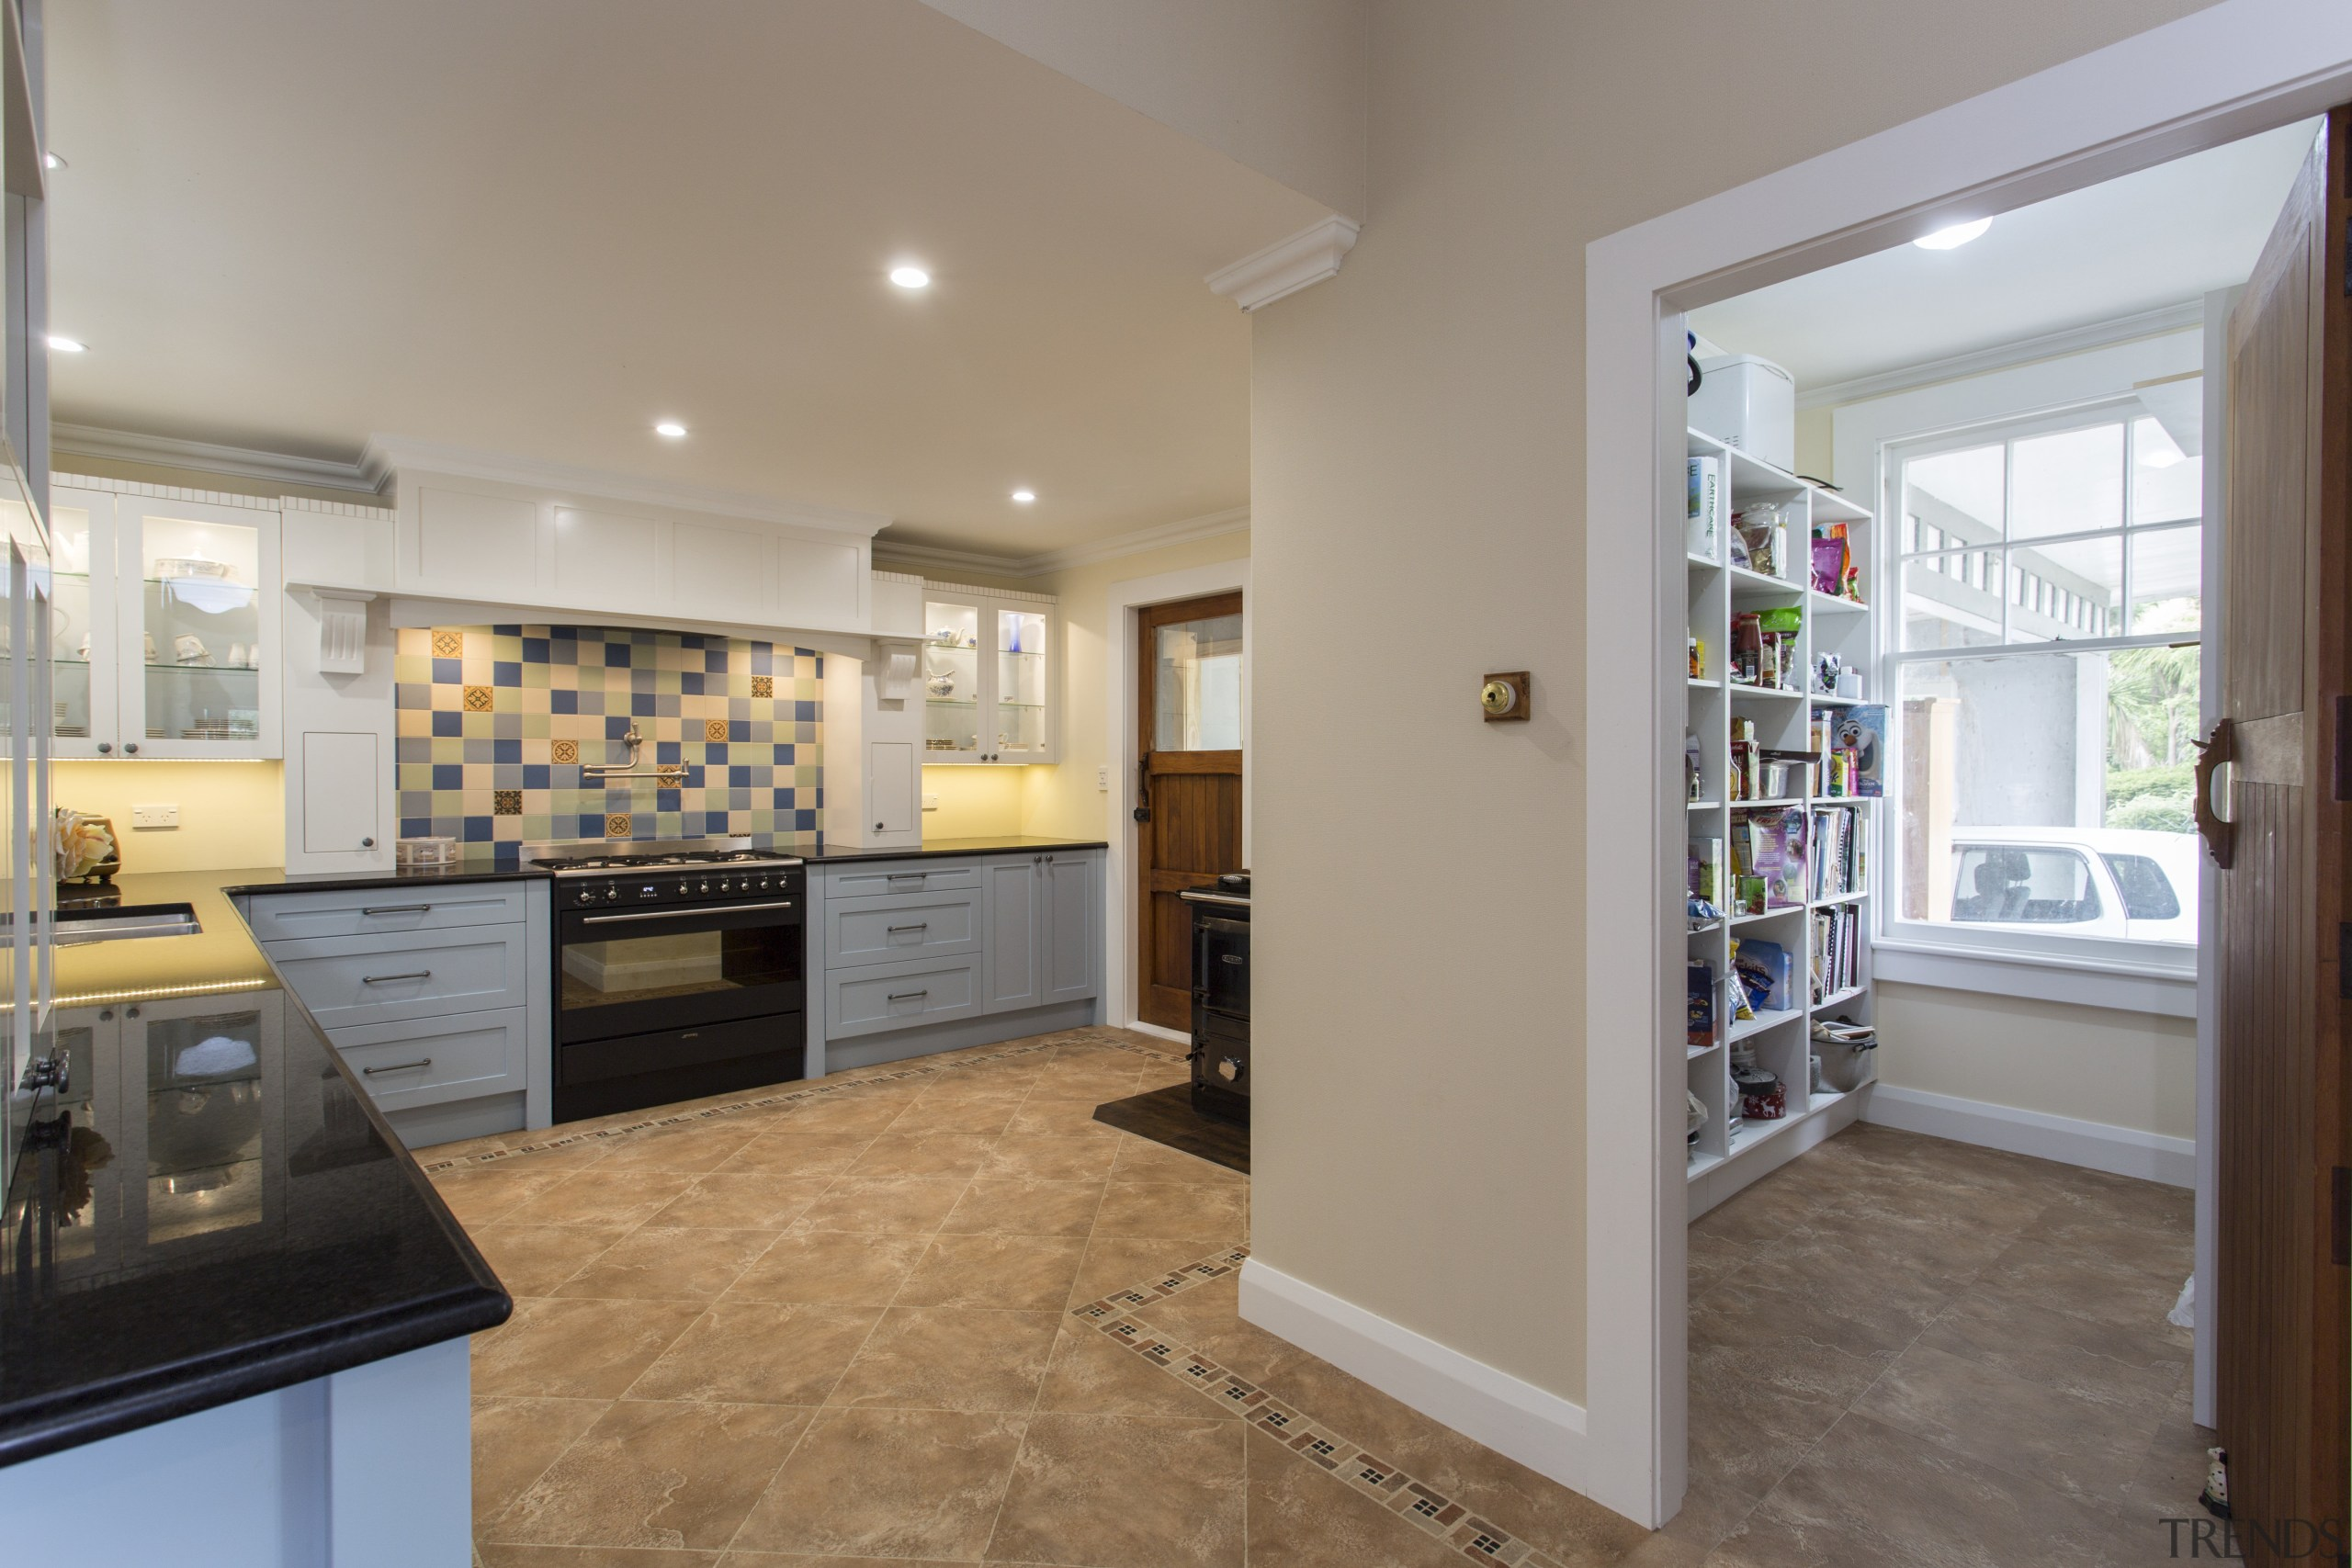 The subtle paint colours in this kitchen by floor, flooring, home, interior design, kitchen, property, real estate, room, gray